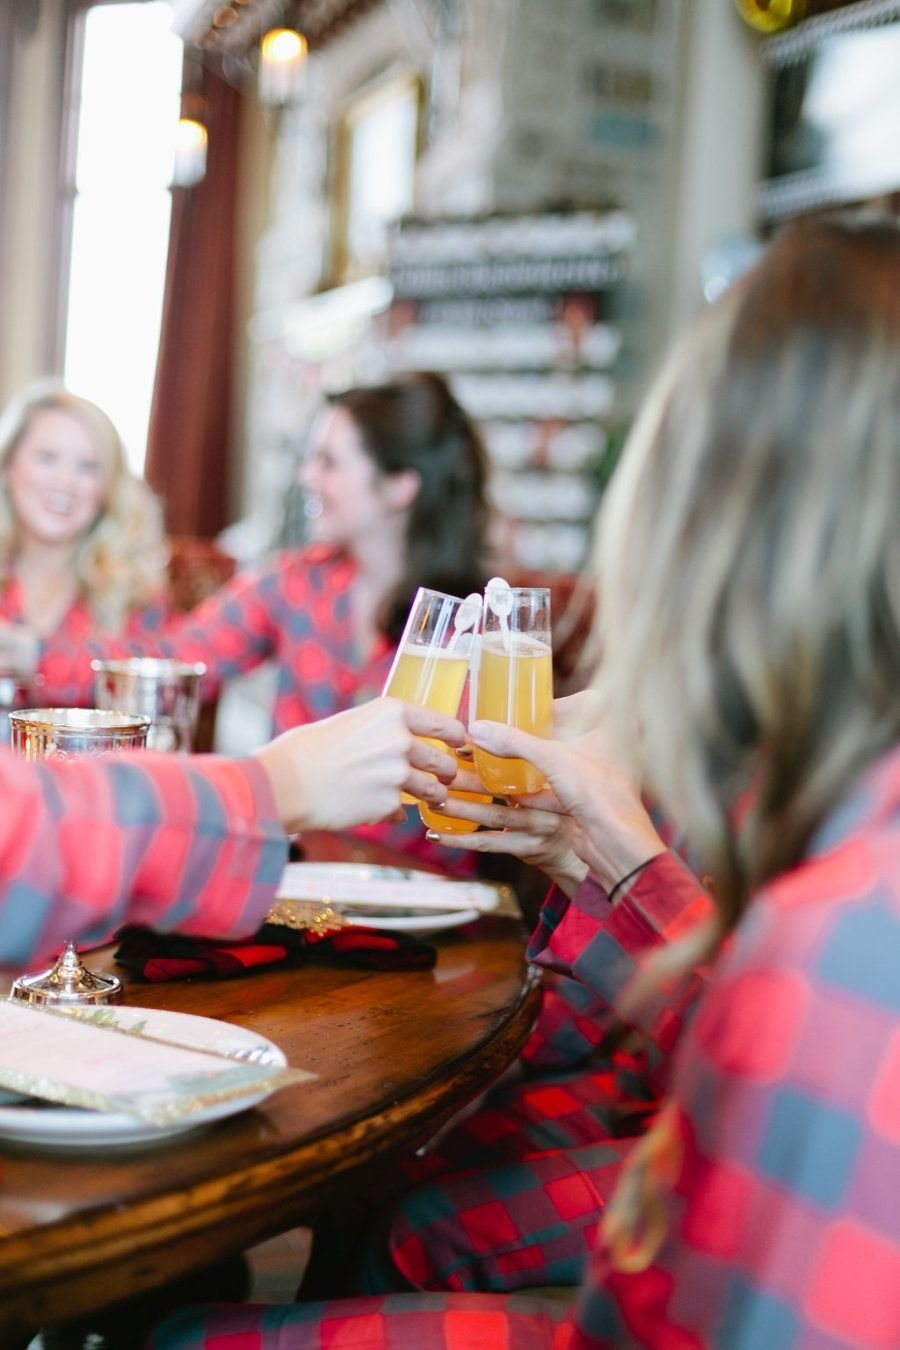 10 Perfect Bachelor Party Ideas St. Louis cozy flannel themed bachelorette weekend in the mountains 1 2020